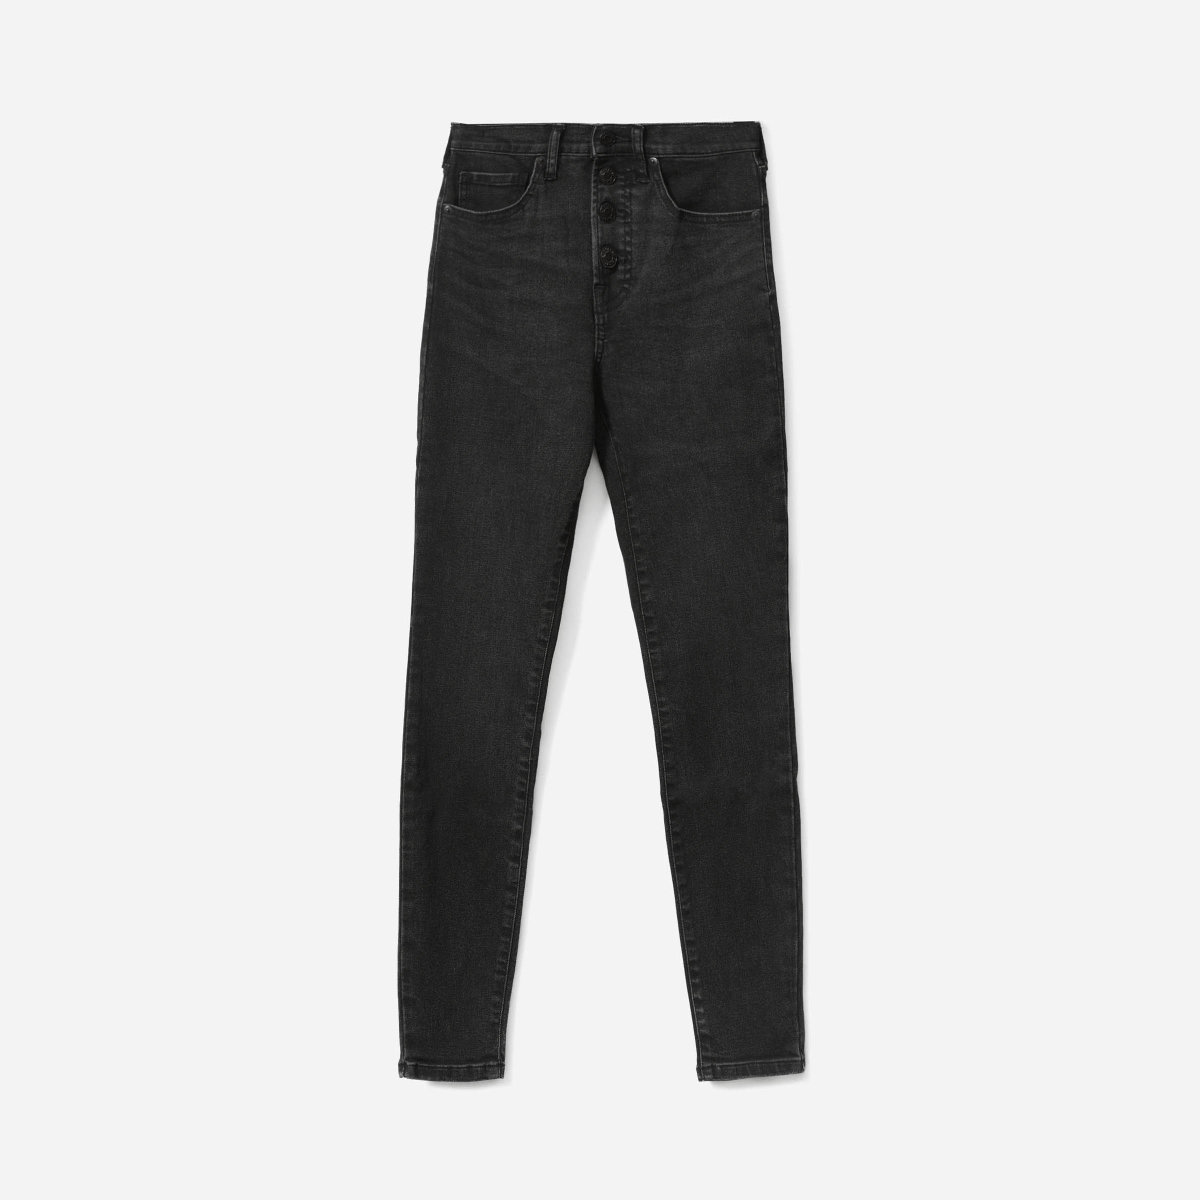 0d00a1e83 Here is the link to the video W The Authentic Stretch High-Rise Skinny Jean  (Ankle) - Washed Black Button Fly, Ruby.